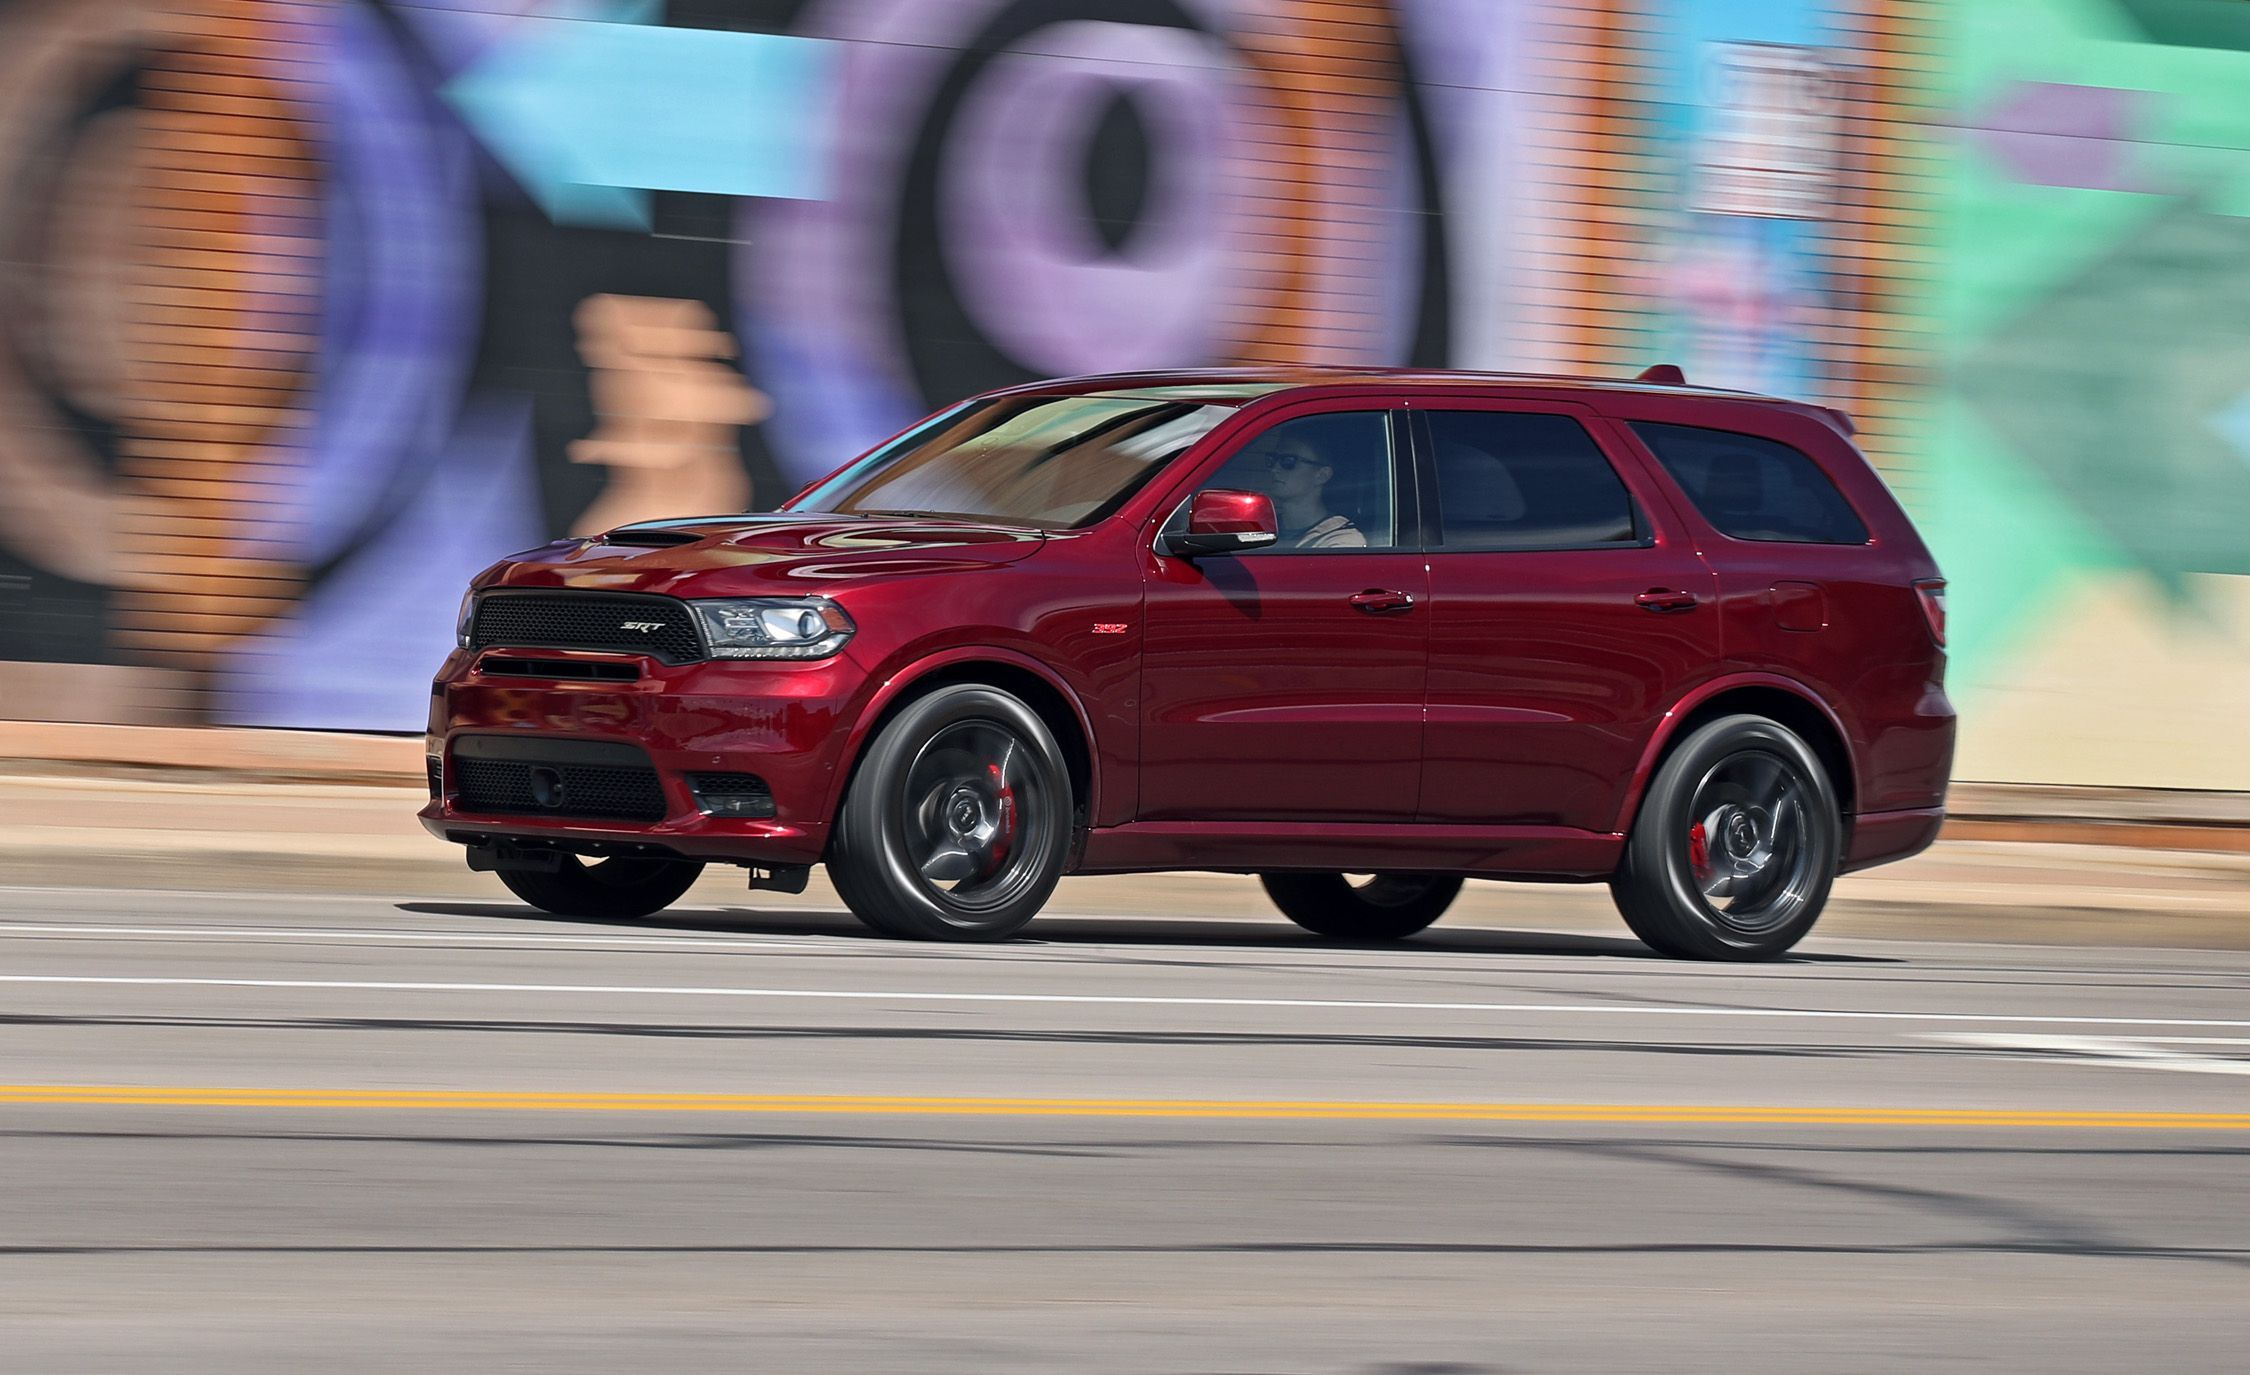 2018 dodge durango srt warranty and maintenance coverage review